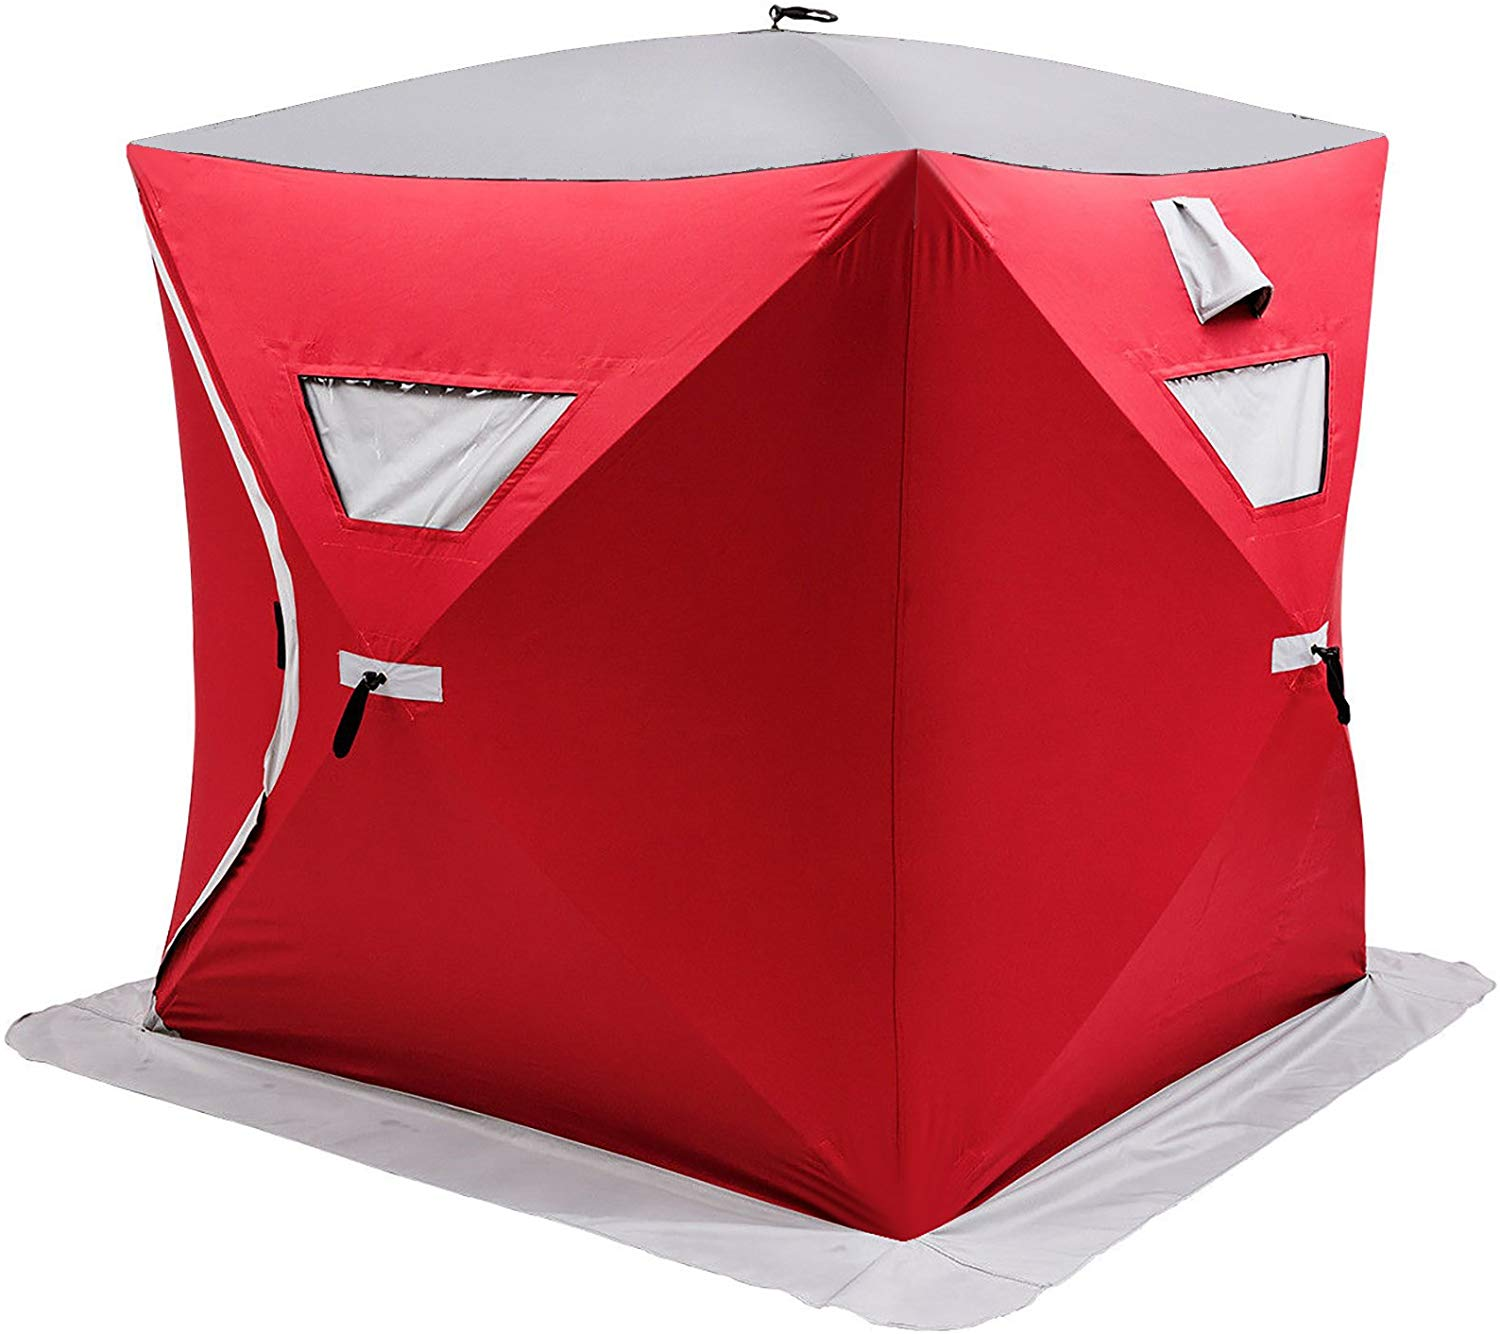 Popsport Ice Fishing tent